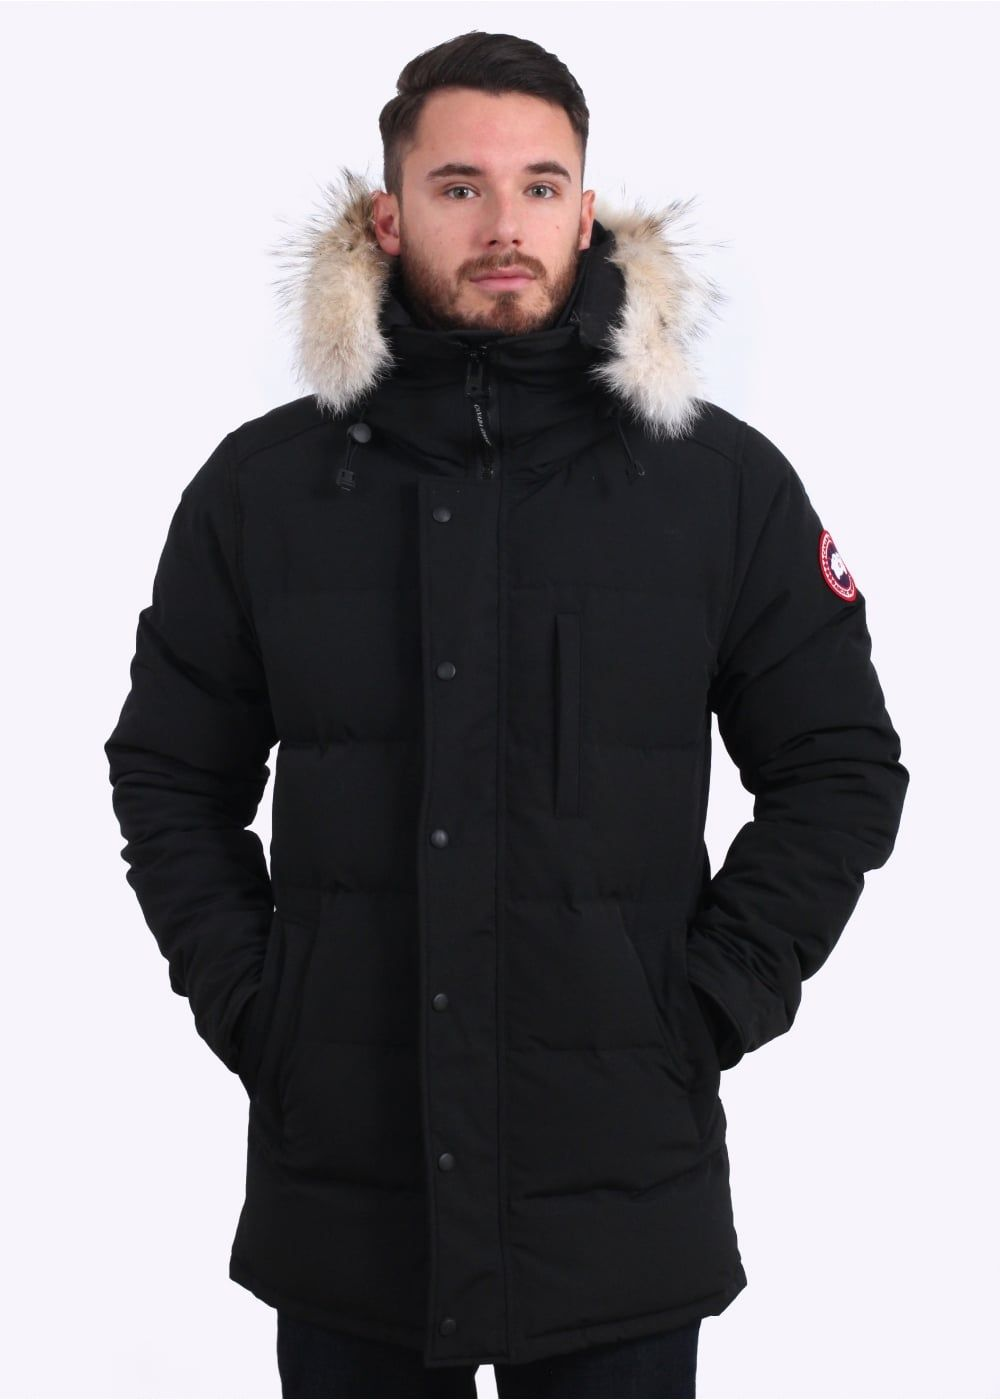 57ce5ff555 canadagoose#@$99 on | Wardrobe-men | Winter outfits men, Canada ...